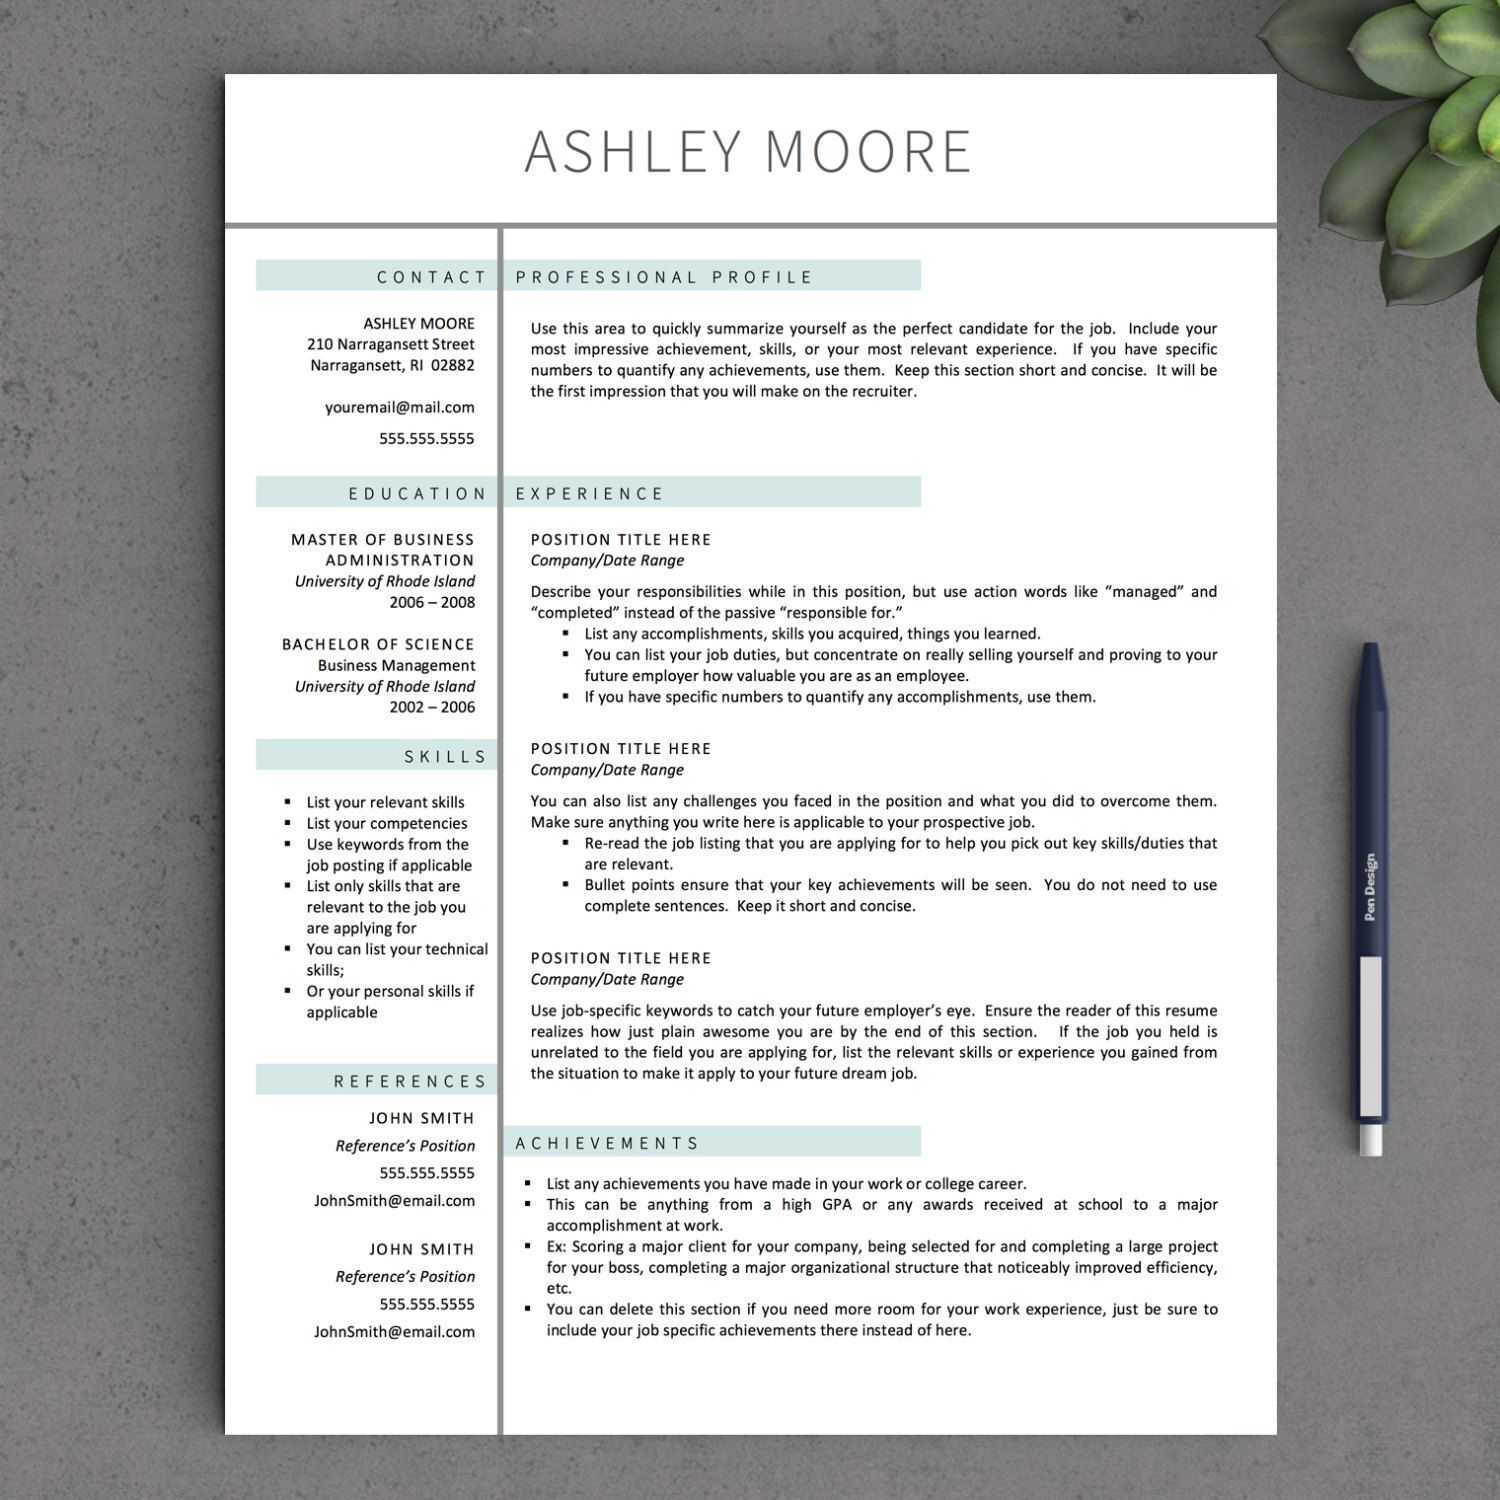 Apple Pages Resume Templates